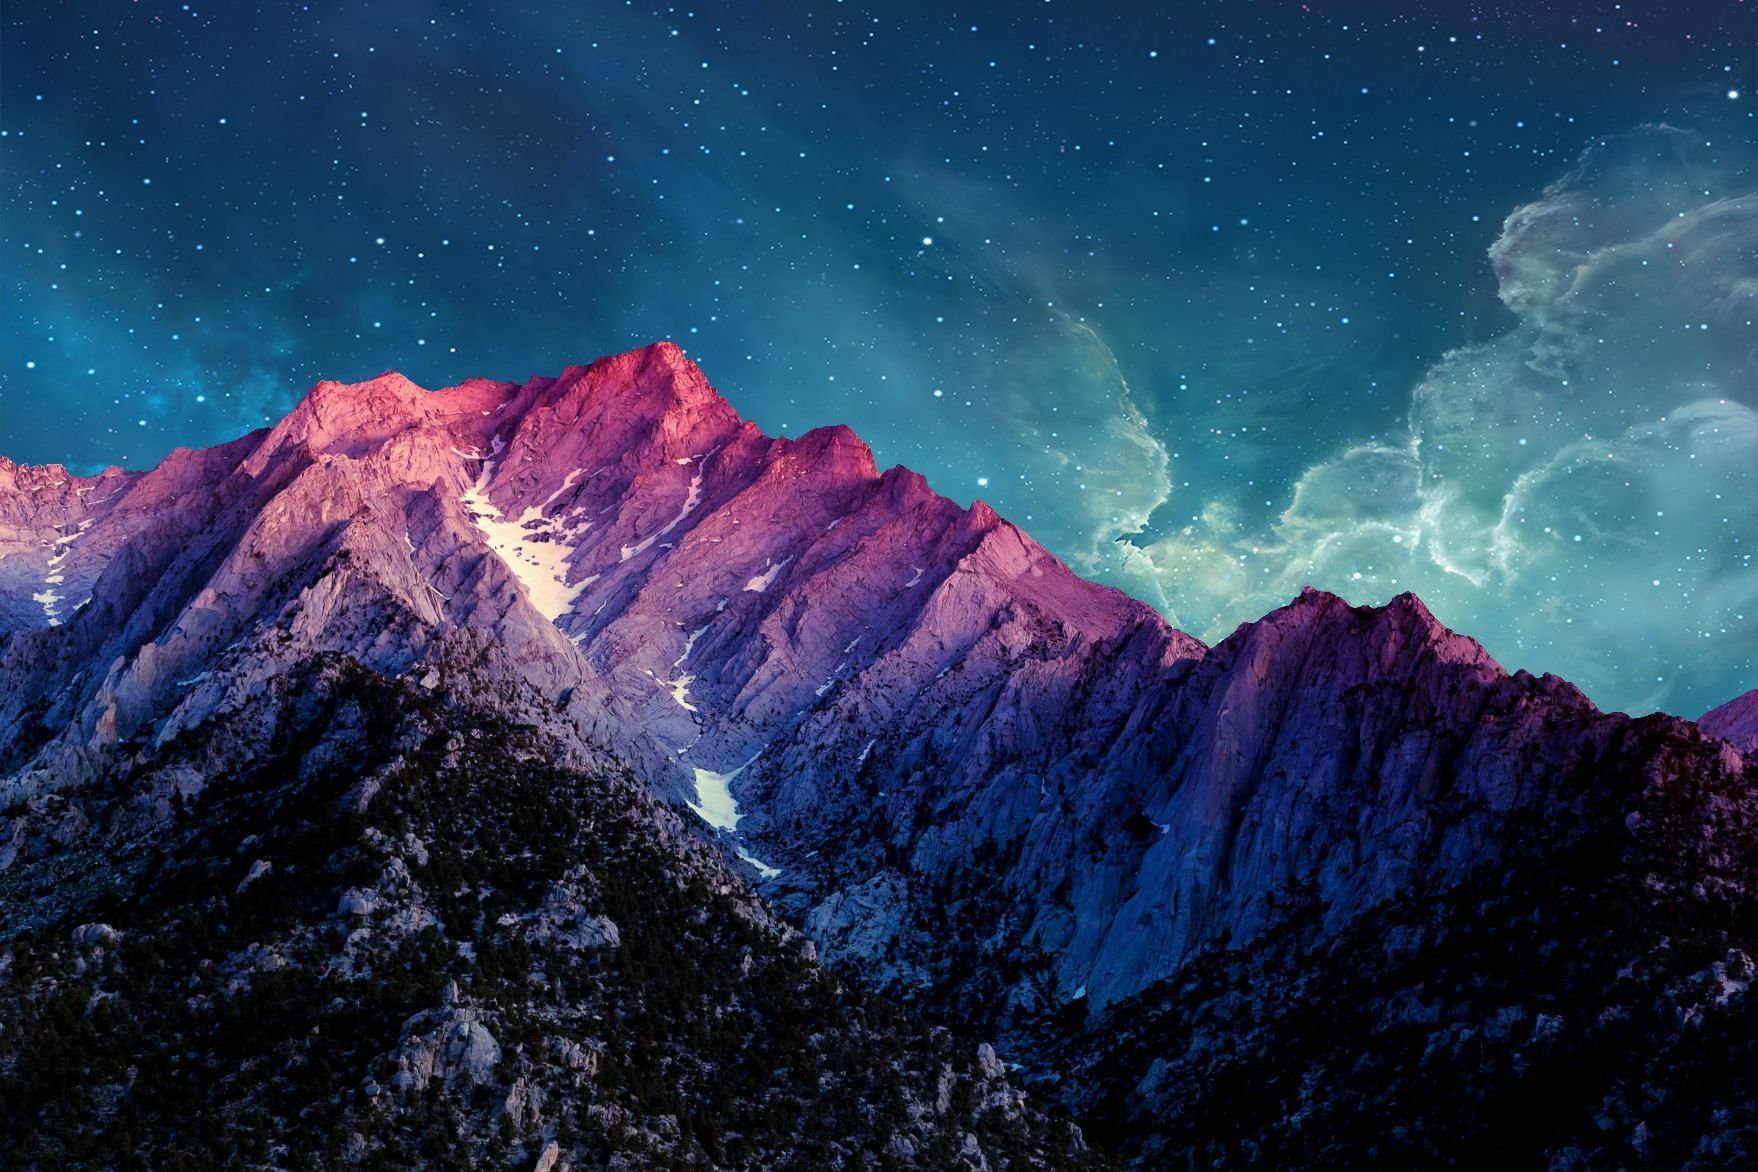 Decided To Dump A Bunch Of Wallpapers I Ve Accumulated Over Time Here Enjoy Landscape Wallpaper Mountain Wallpaper Night Sky Wallpaper